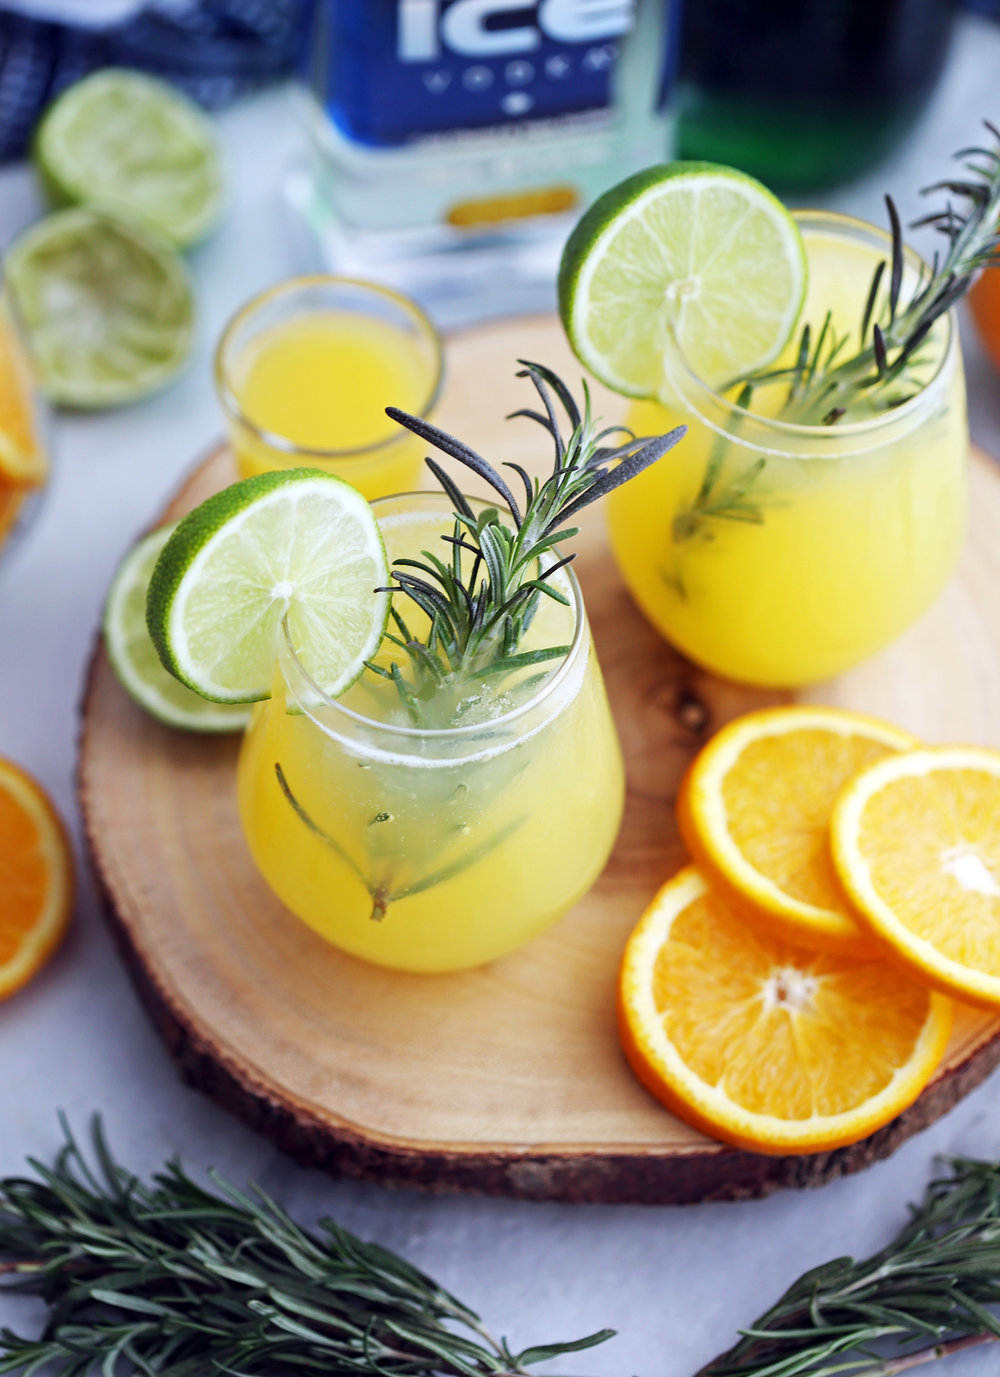 An high-angled view of two glasses of sparkling maple orange vodka with fresh rosemary sprigs, lime slices, and orange slices.